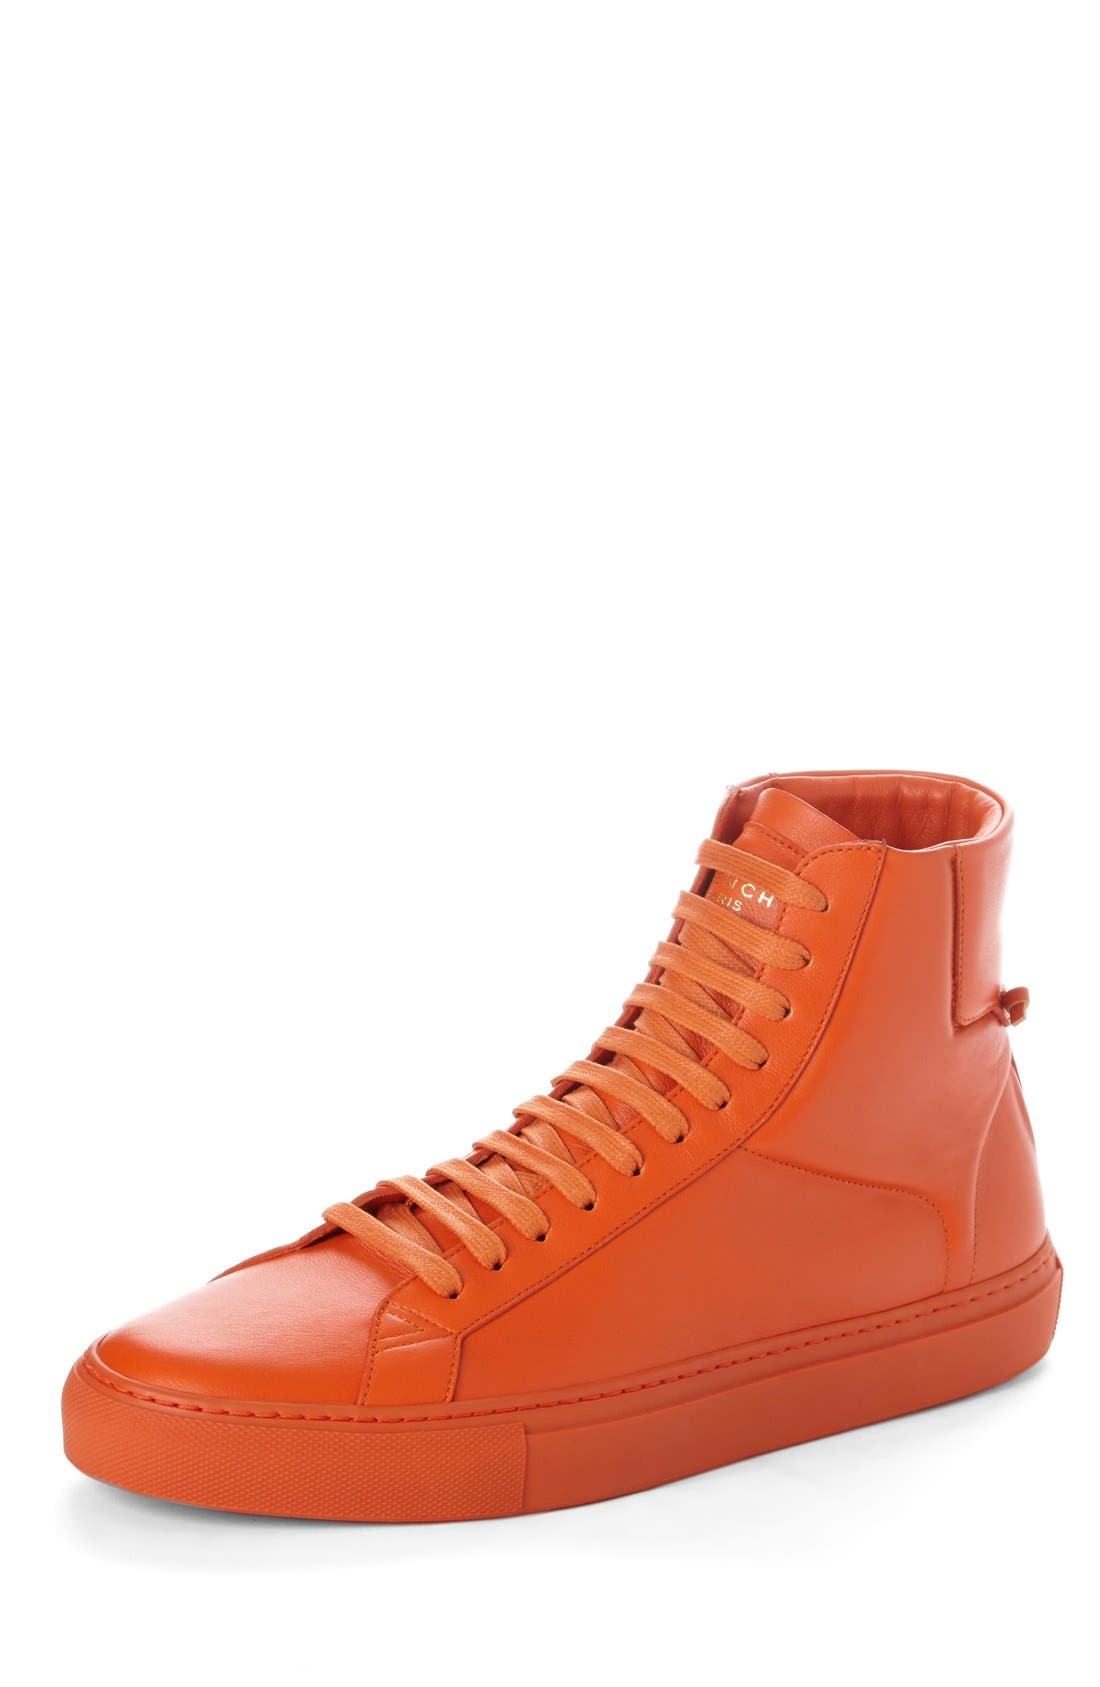 'Urban Knots' High Top Sneaker,                             Main thumbnail 1, color,                             Orange Leather